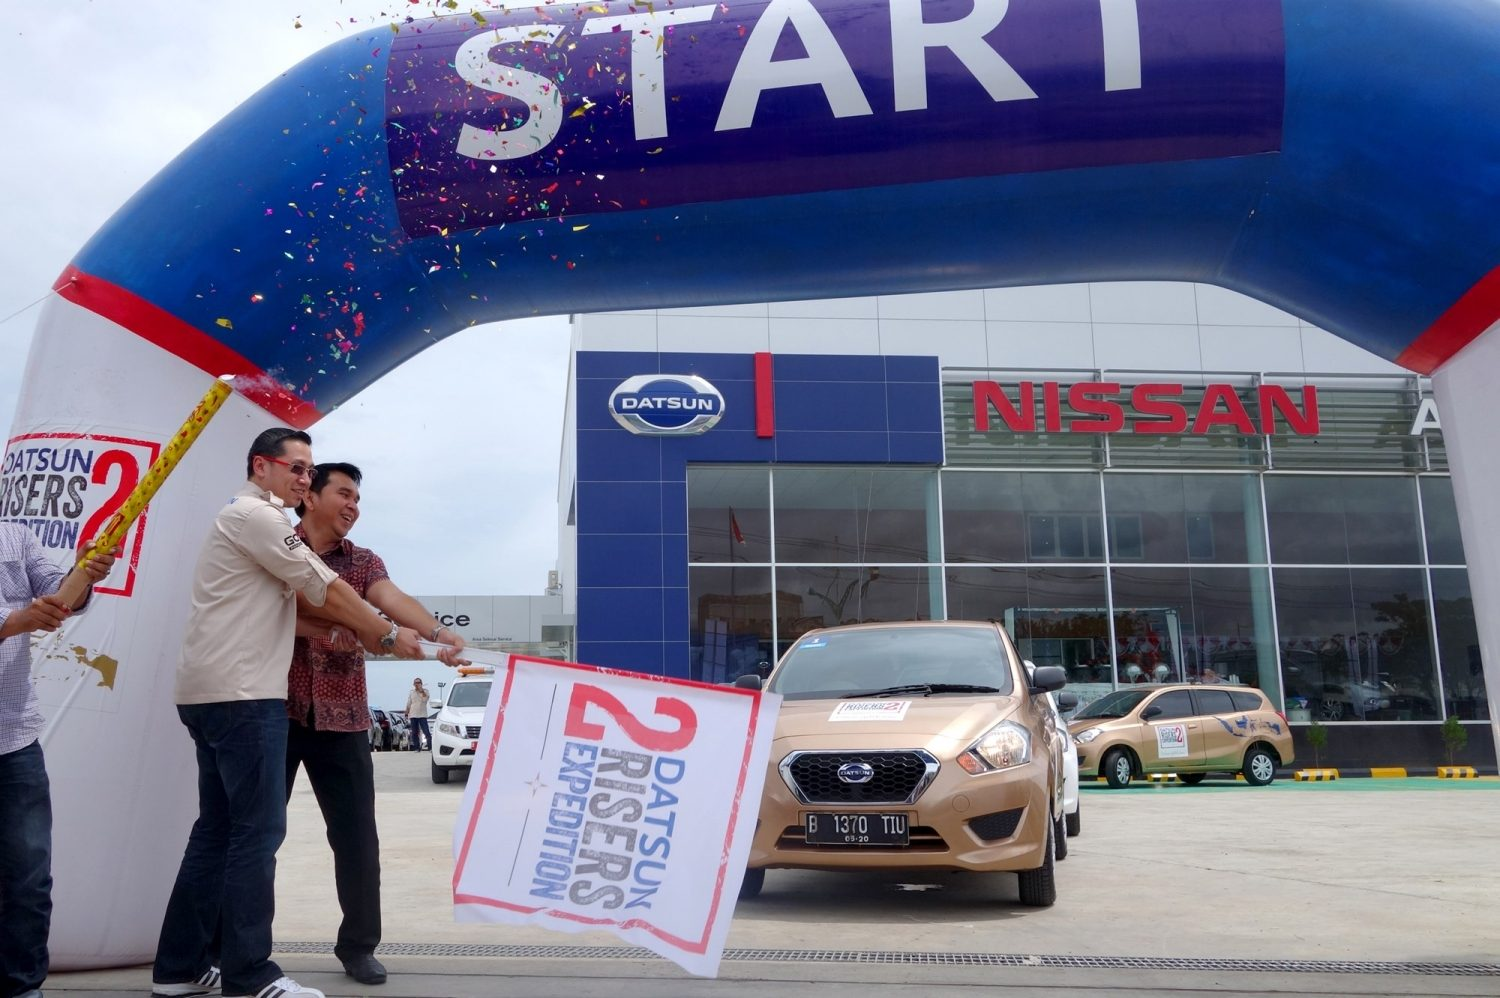 Peresmian Datsun Risers Expedition 2 - Aceh